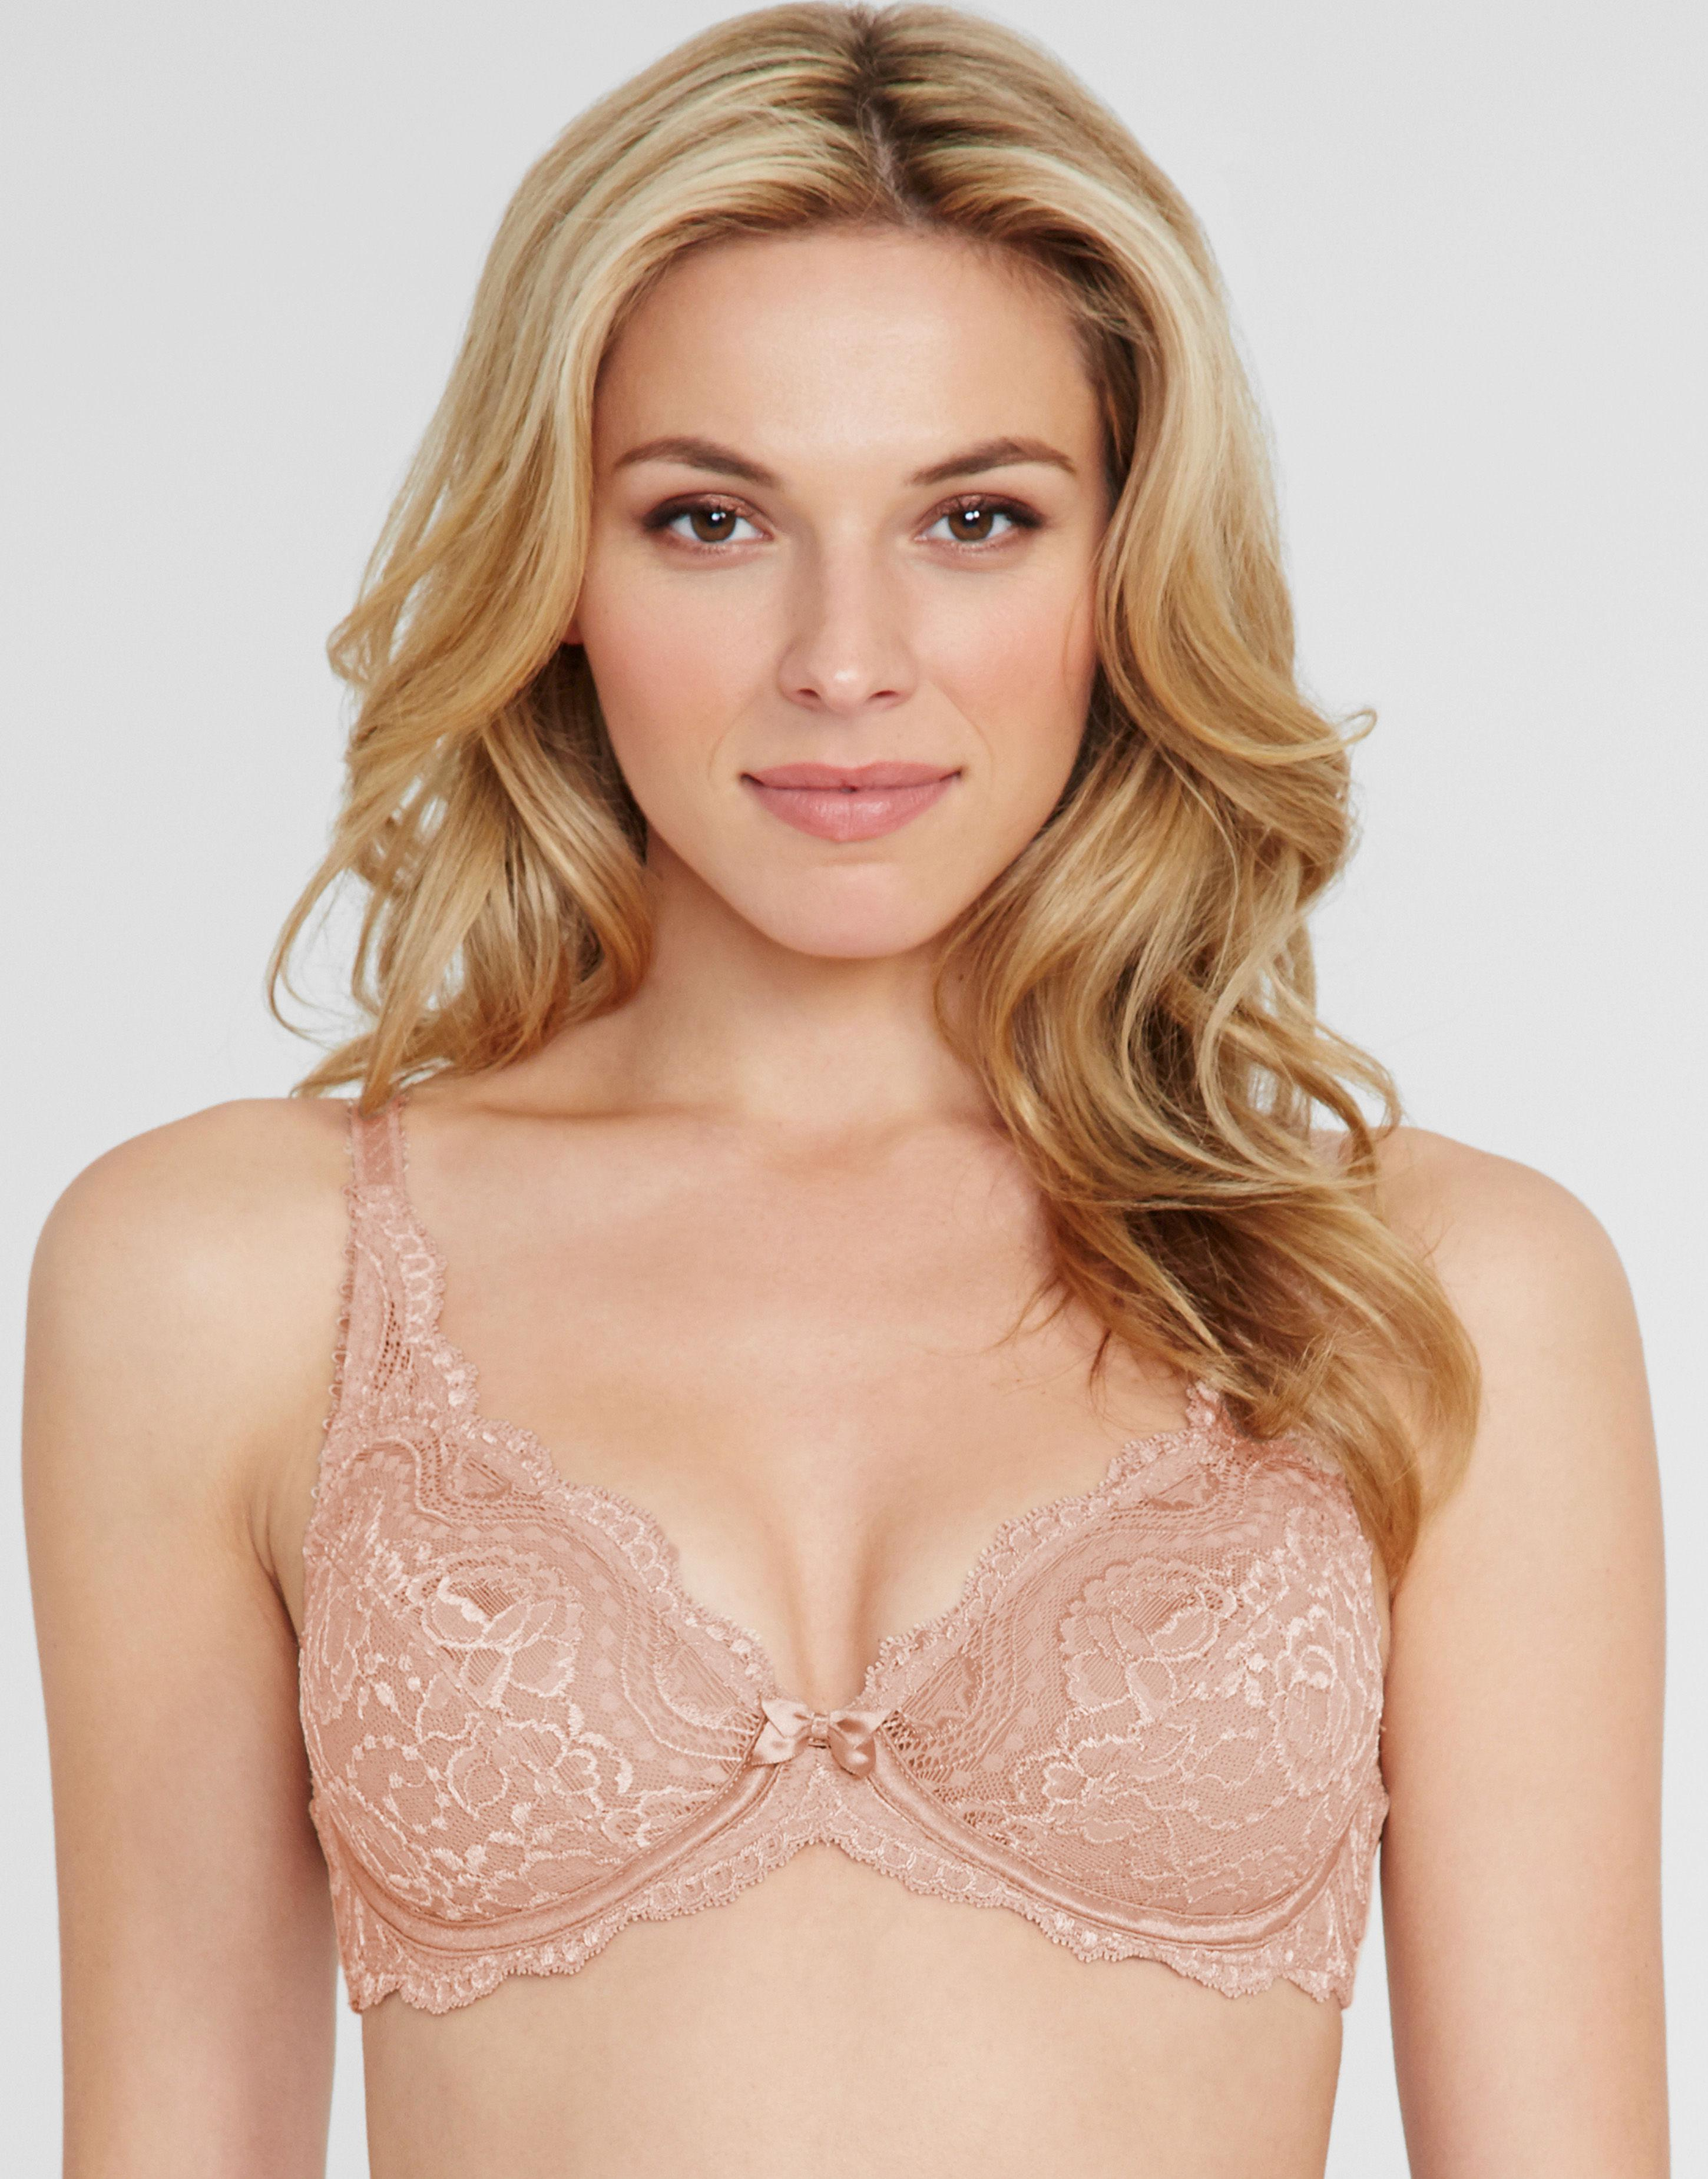 2c60f1b5e0d0c Playtex Flower Lace Underwired Bra in Natural - Lyst